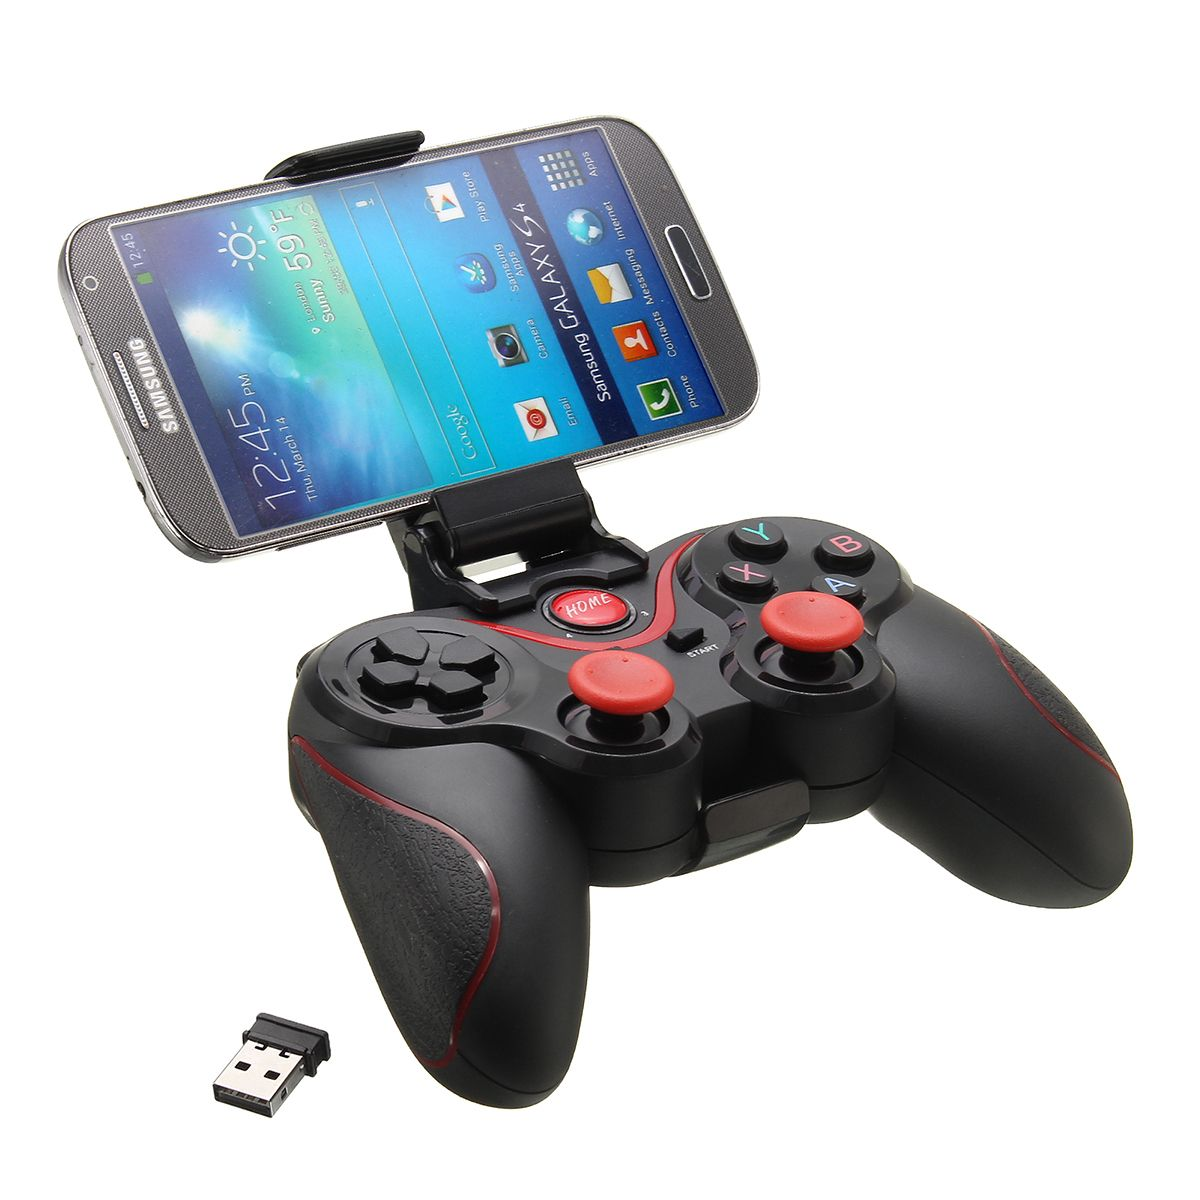 C8 Wireless Bluetooth 3 0 Game Pad Gaming Controller Holder Receiver For Android Smart Phone Tablet Mobile Phone Accessories From Phones Telecommunications On Game Controller Wireless Bluetooth Games